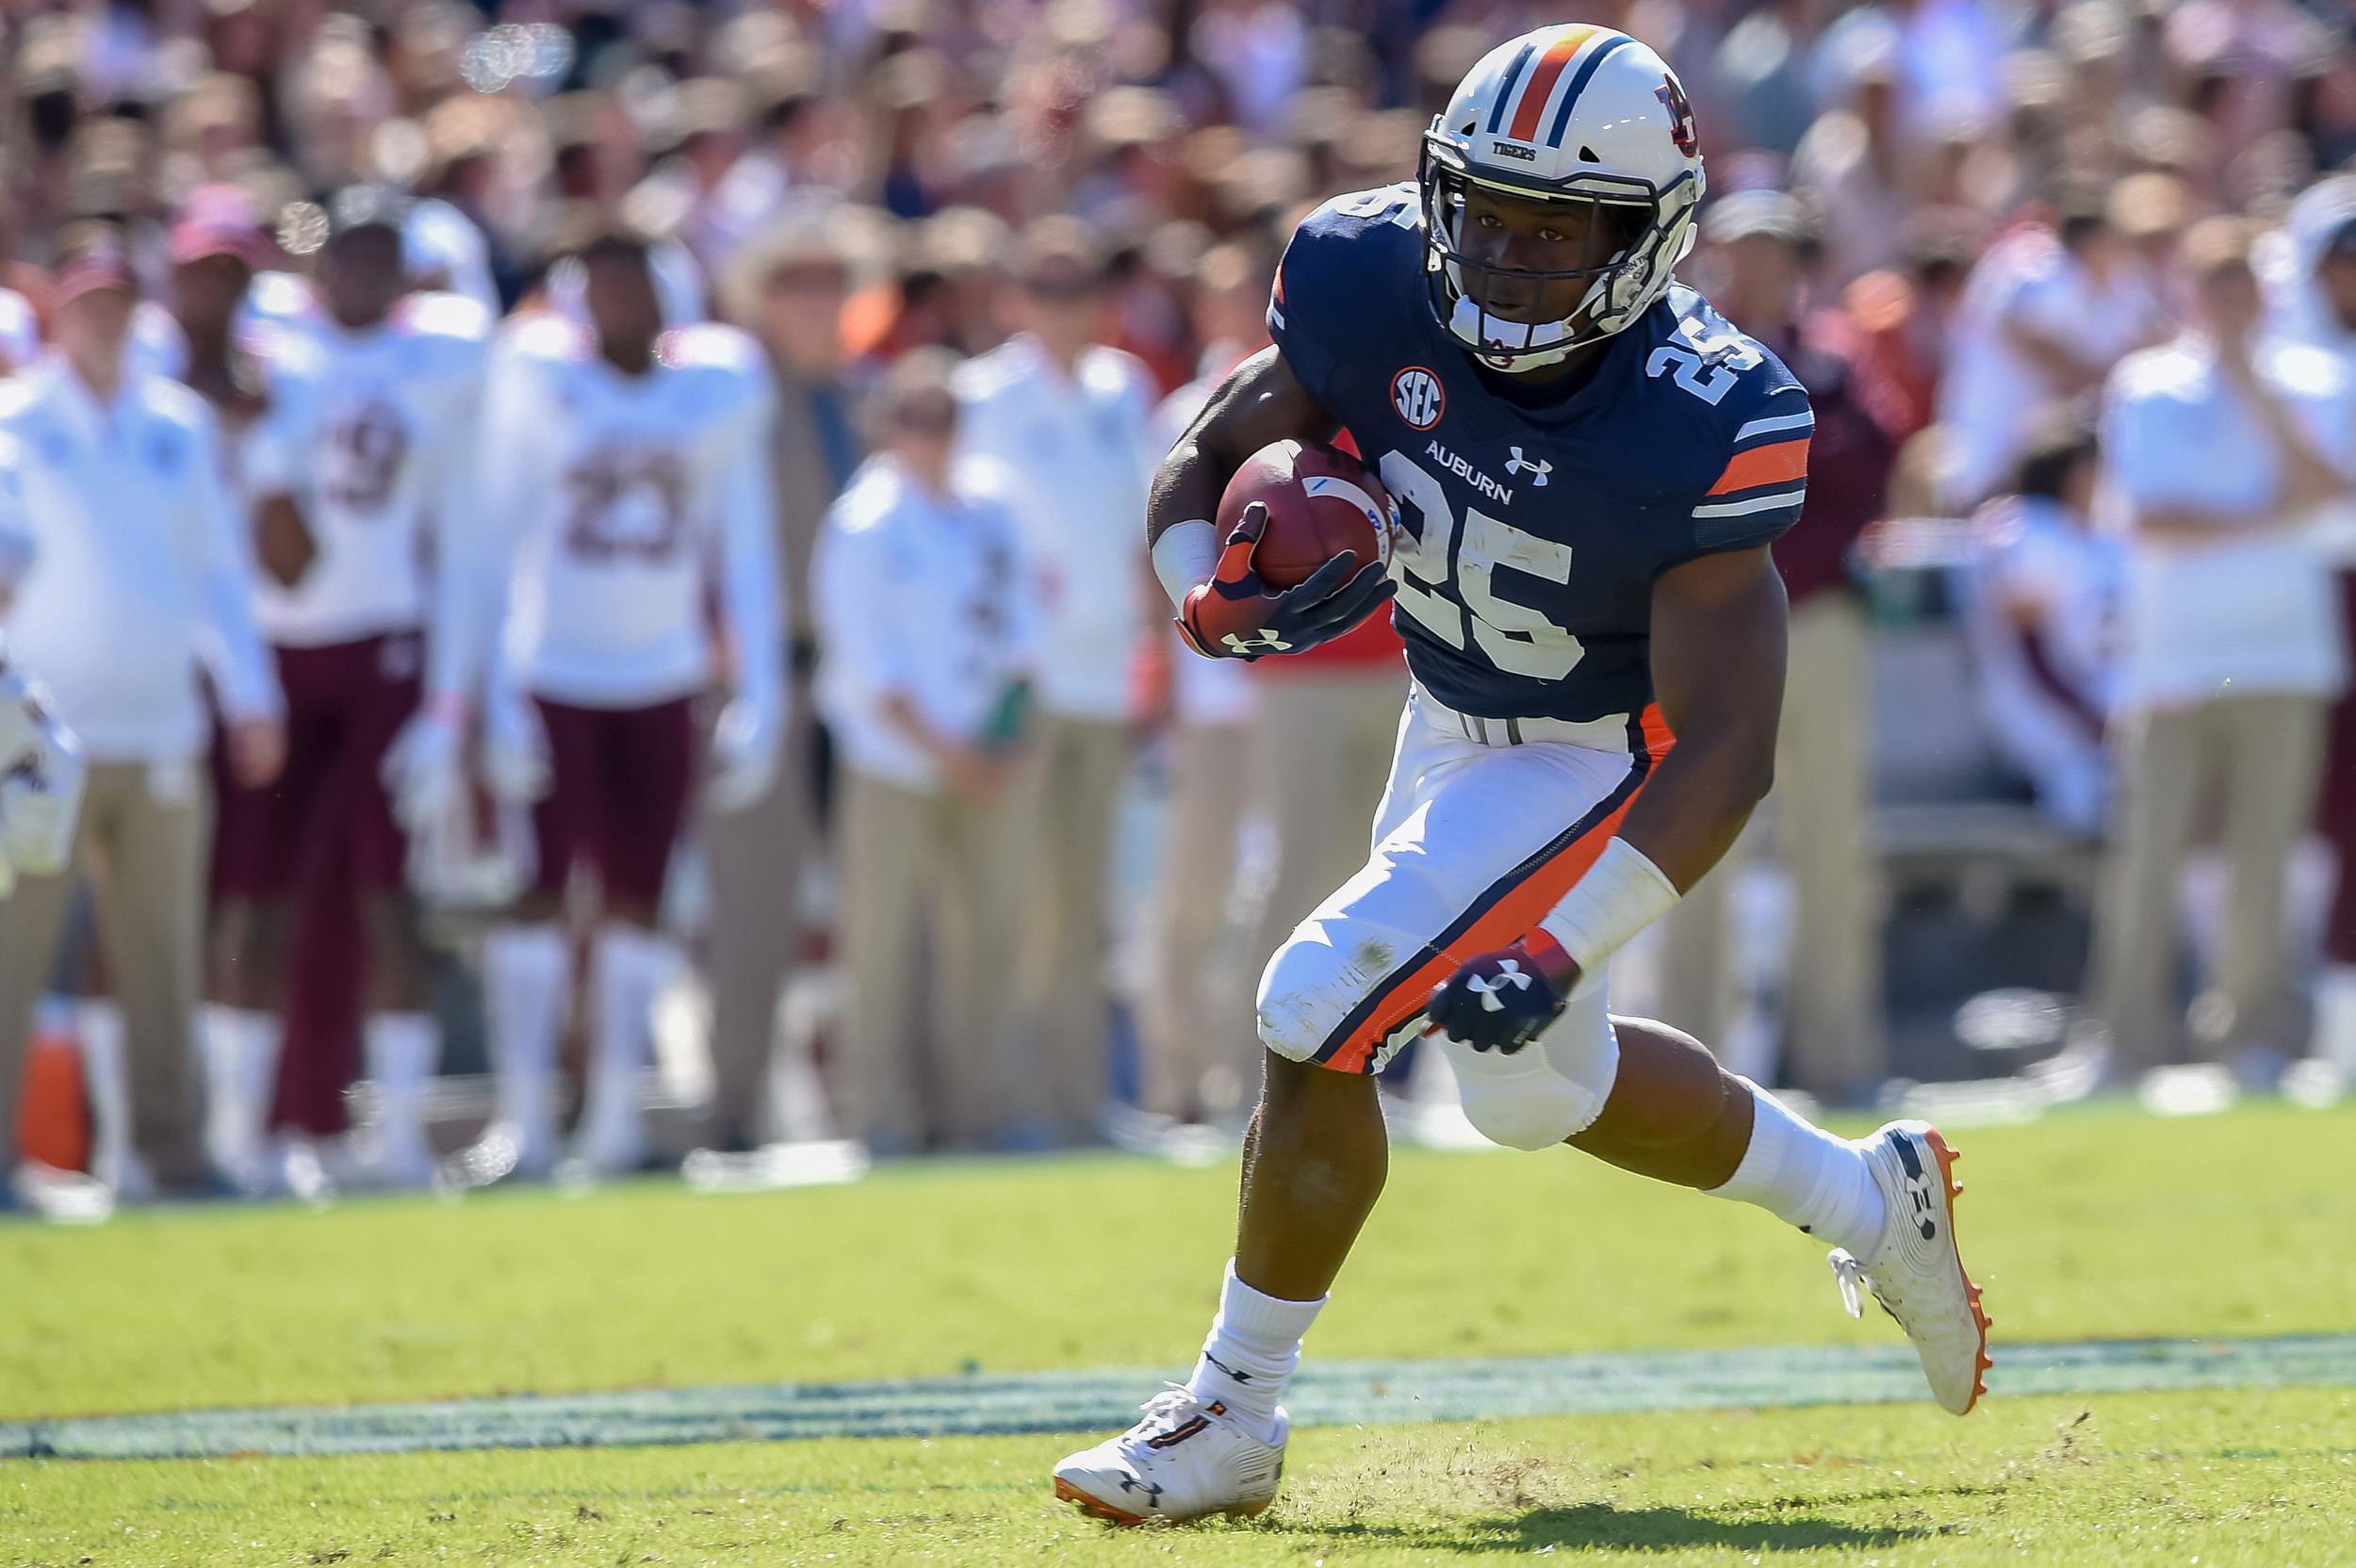 Auburn Tigers running back Shaun Shivers (25) runs during the first half of an NCAA football game against the Texas A&M Aggies Saturday, November 3, 2018, at Jordan-Hare Stadium in Auburn, Ala. (Photo by Jeff Johnsey)